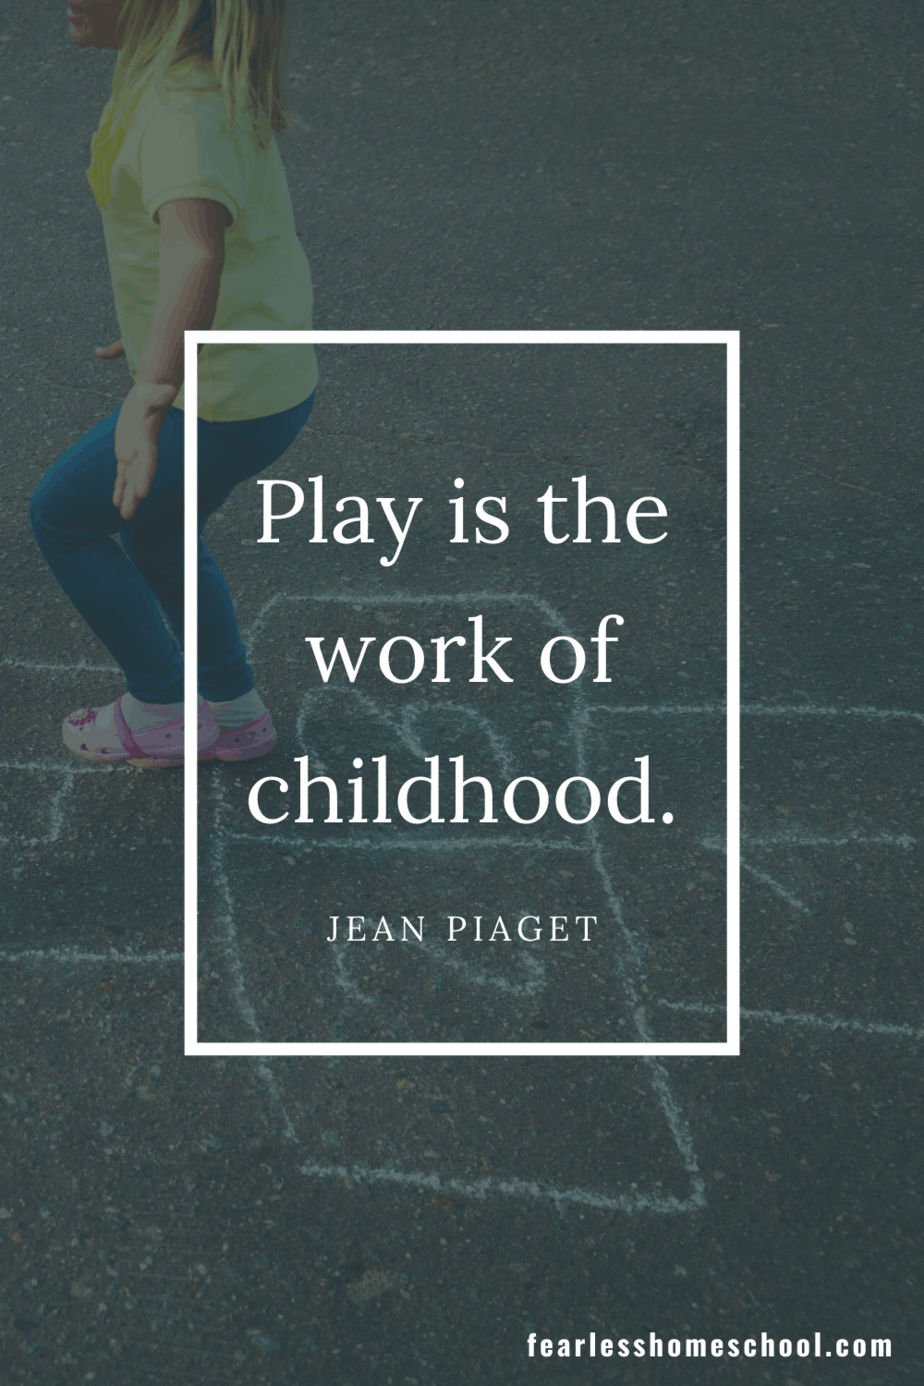 Play is the work of childhood. Jean Piaget homeschooling quote